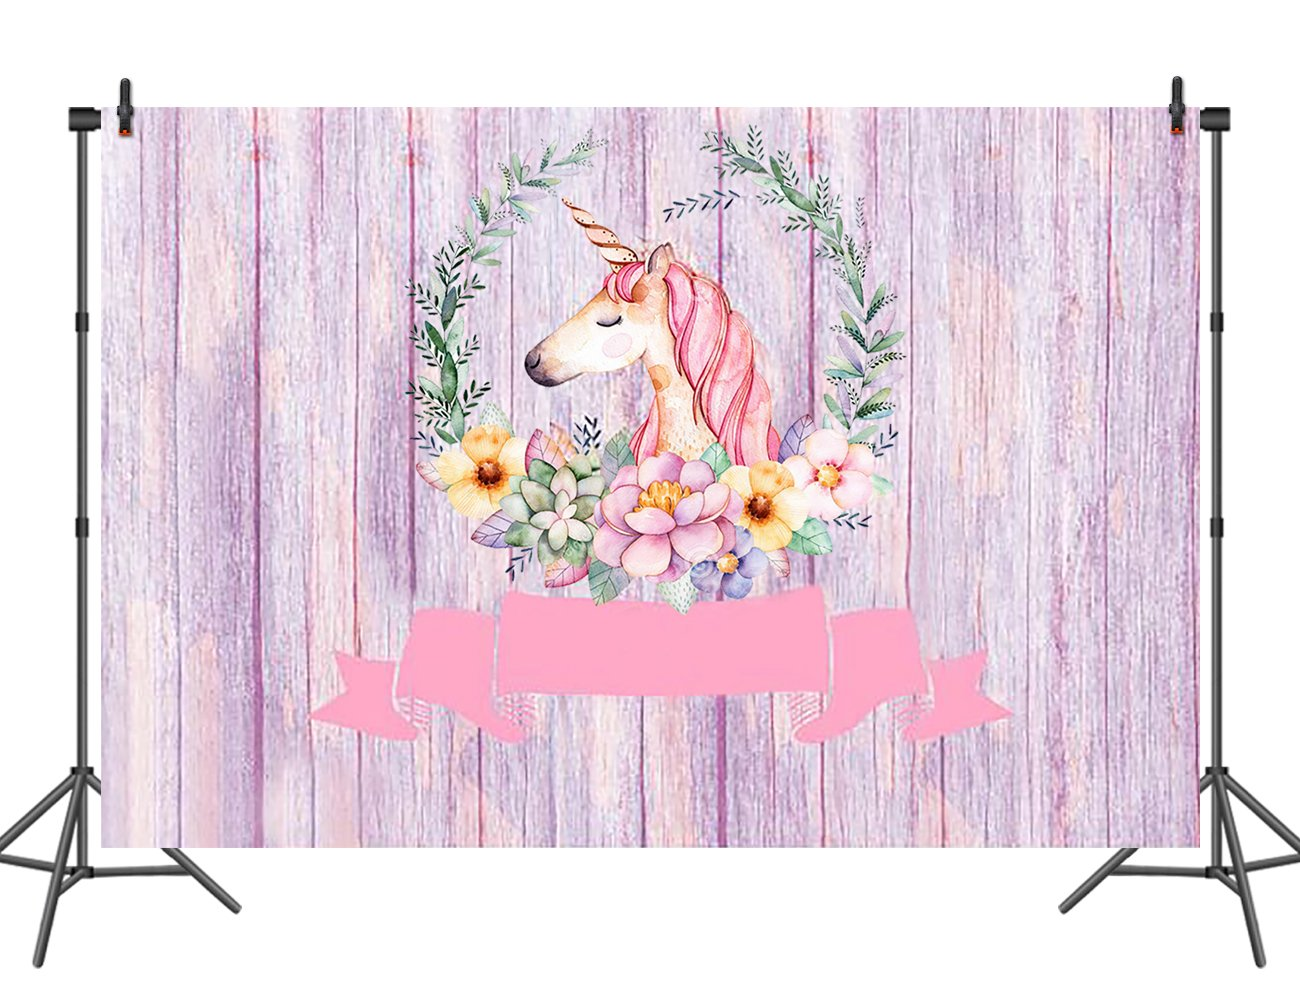 Unicorn Photo Backdrop for Girls Floral Pink Wood Photography Background Baby Shower Party Decoration Dessert Table 7x5ft